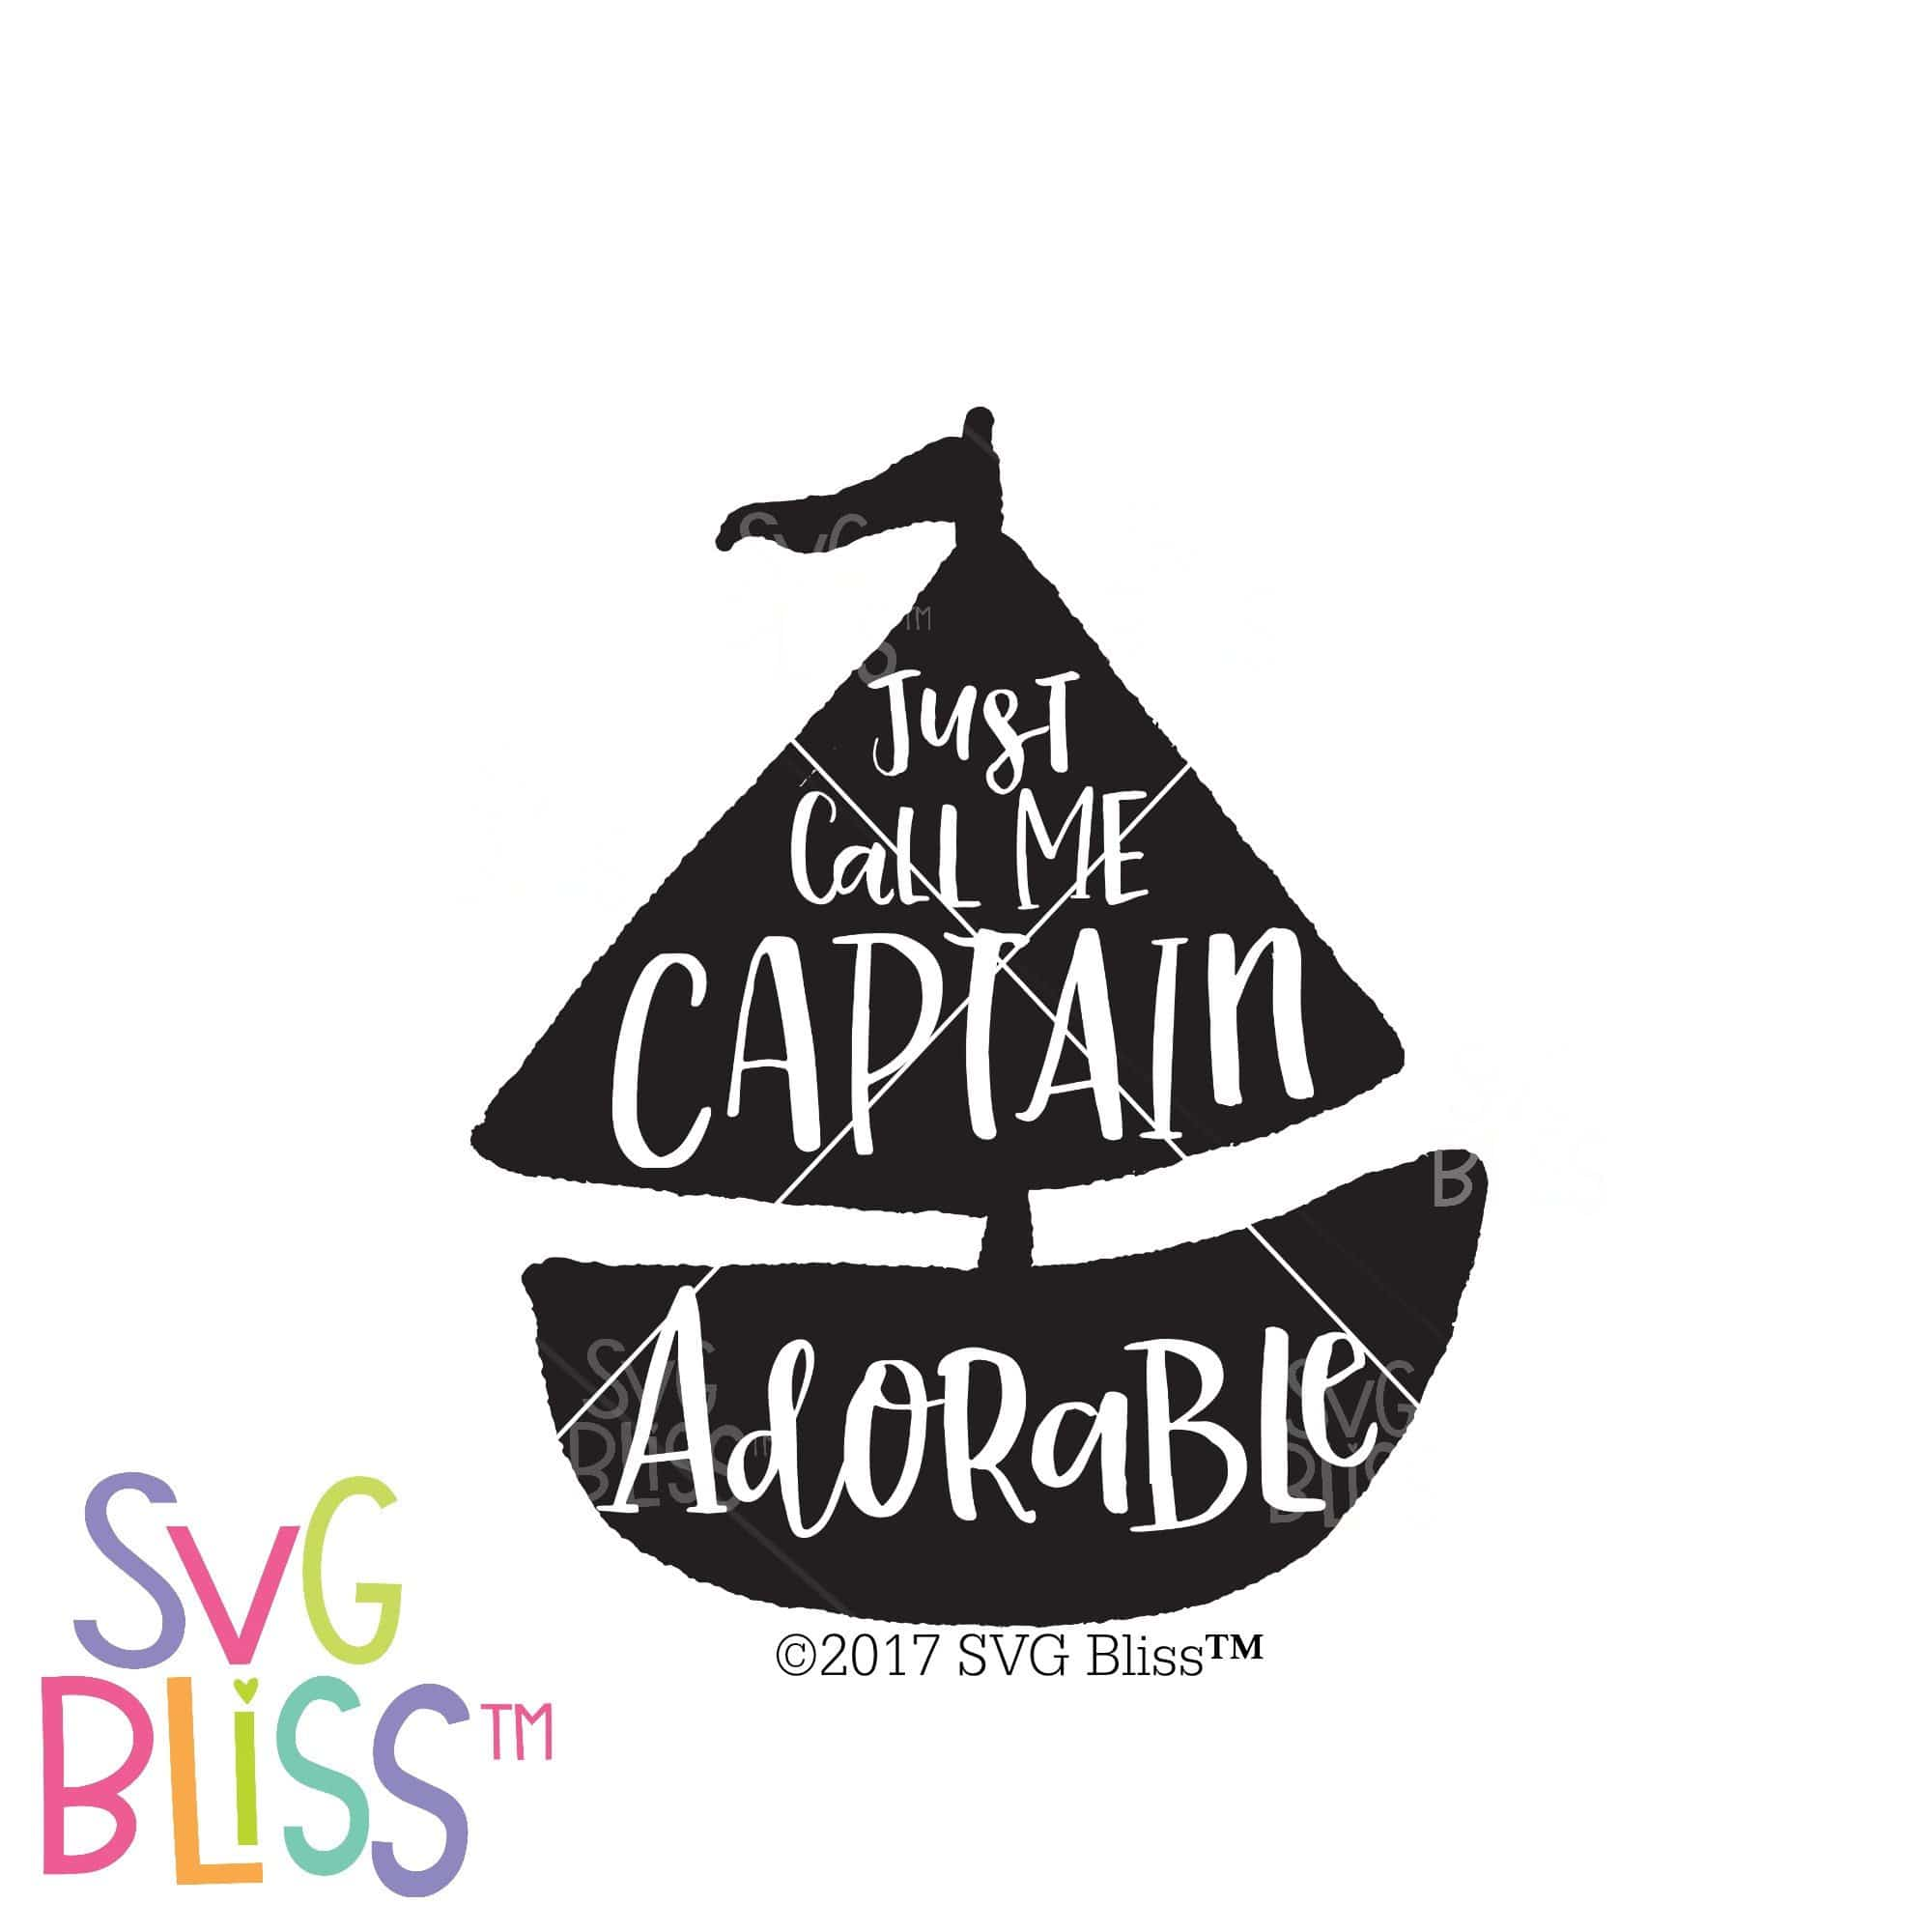 Just Call Me Captain Adorable Svg Eps Dxf Png Svg Bliss